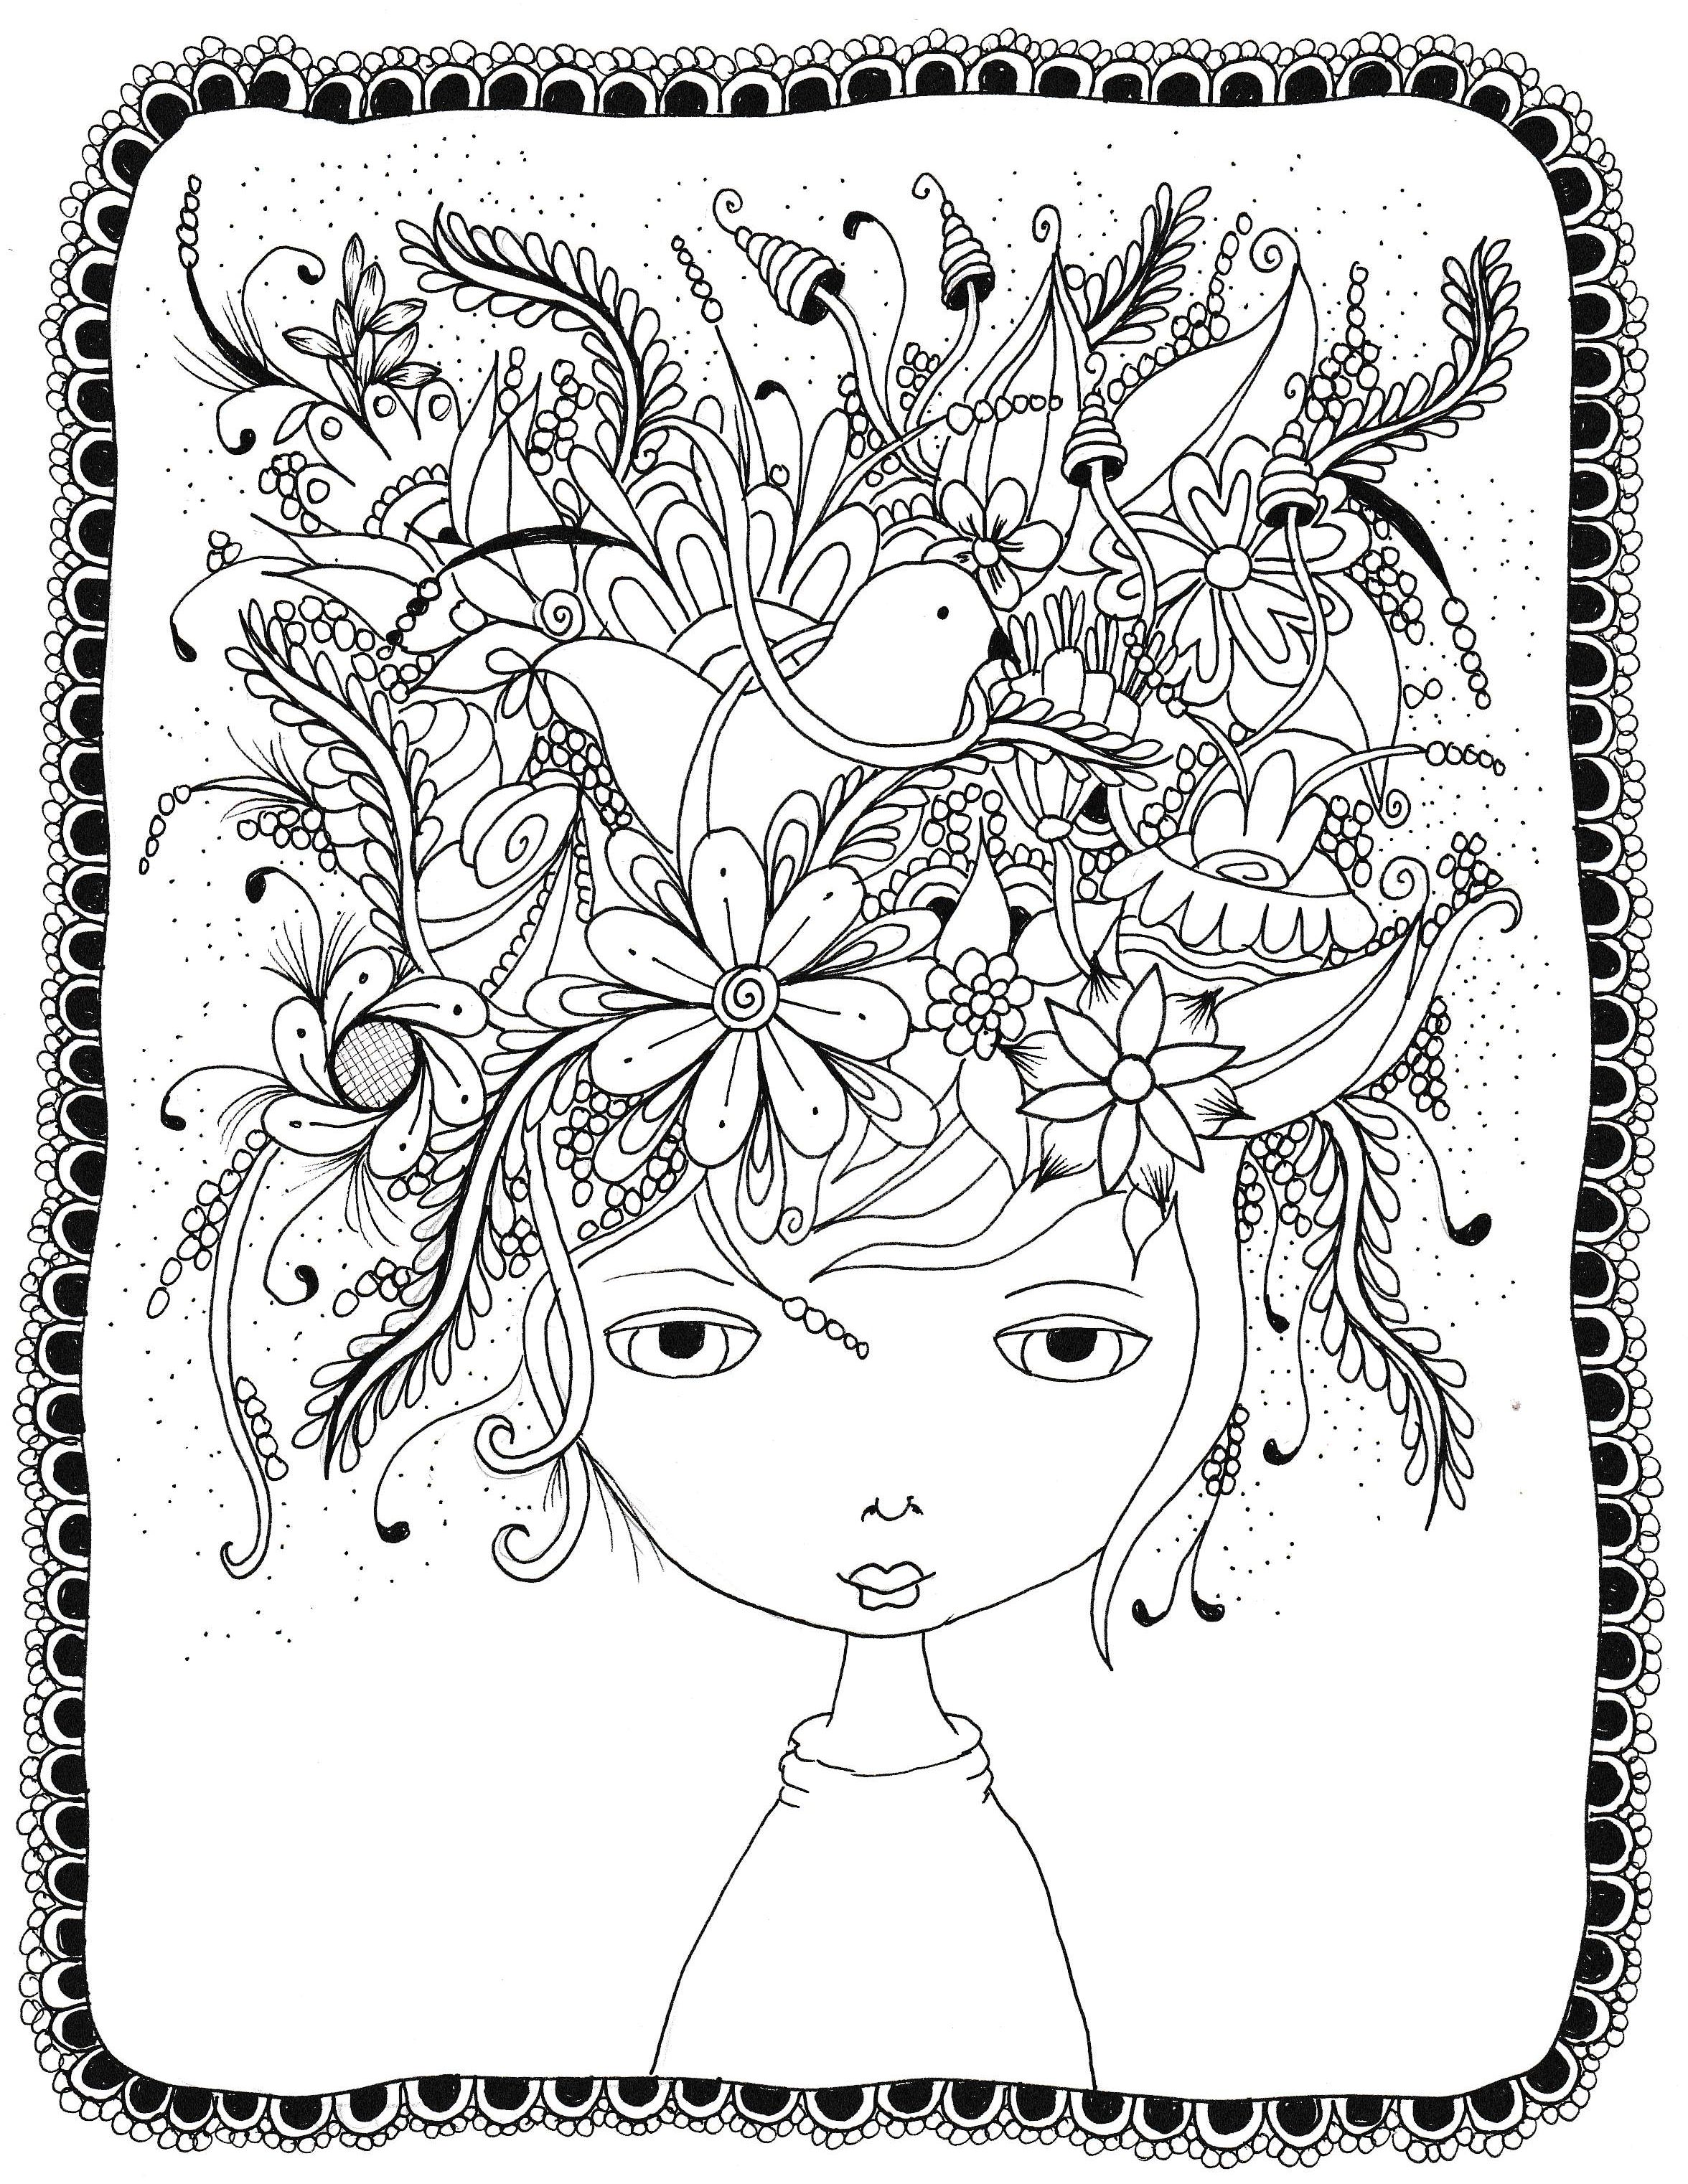 Crazy Hair Day Doodle Free Coloring Page For Adults Bee Coloring